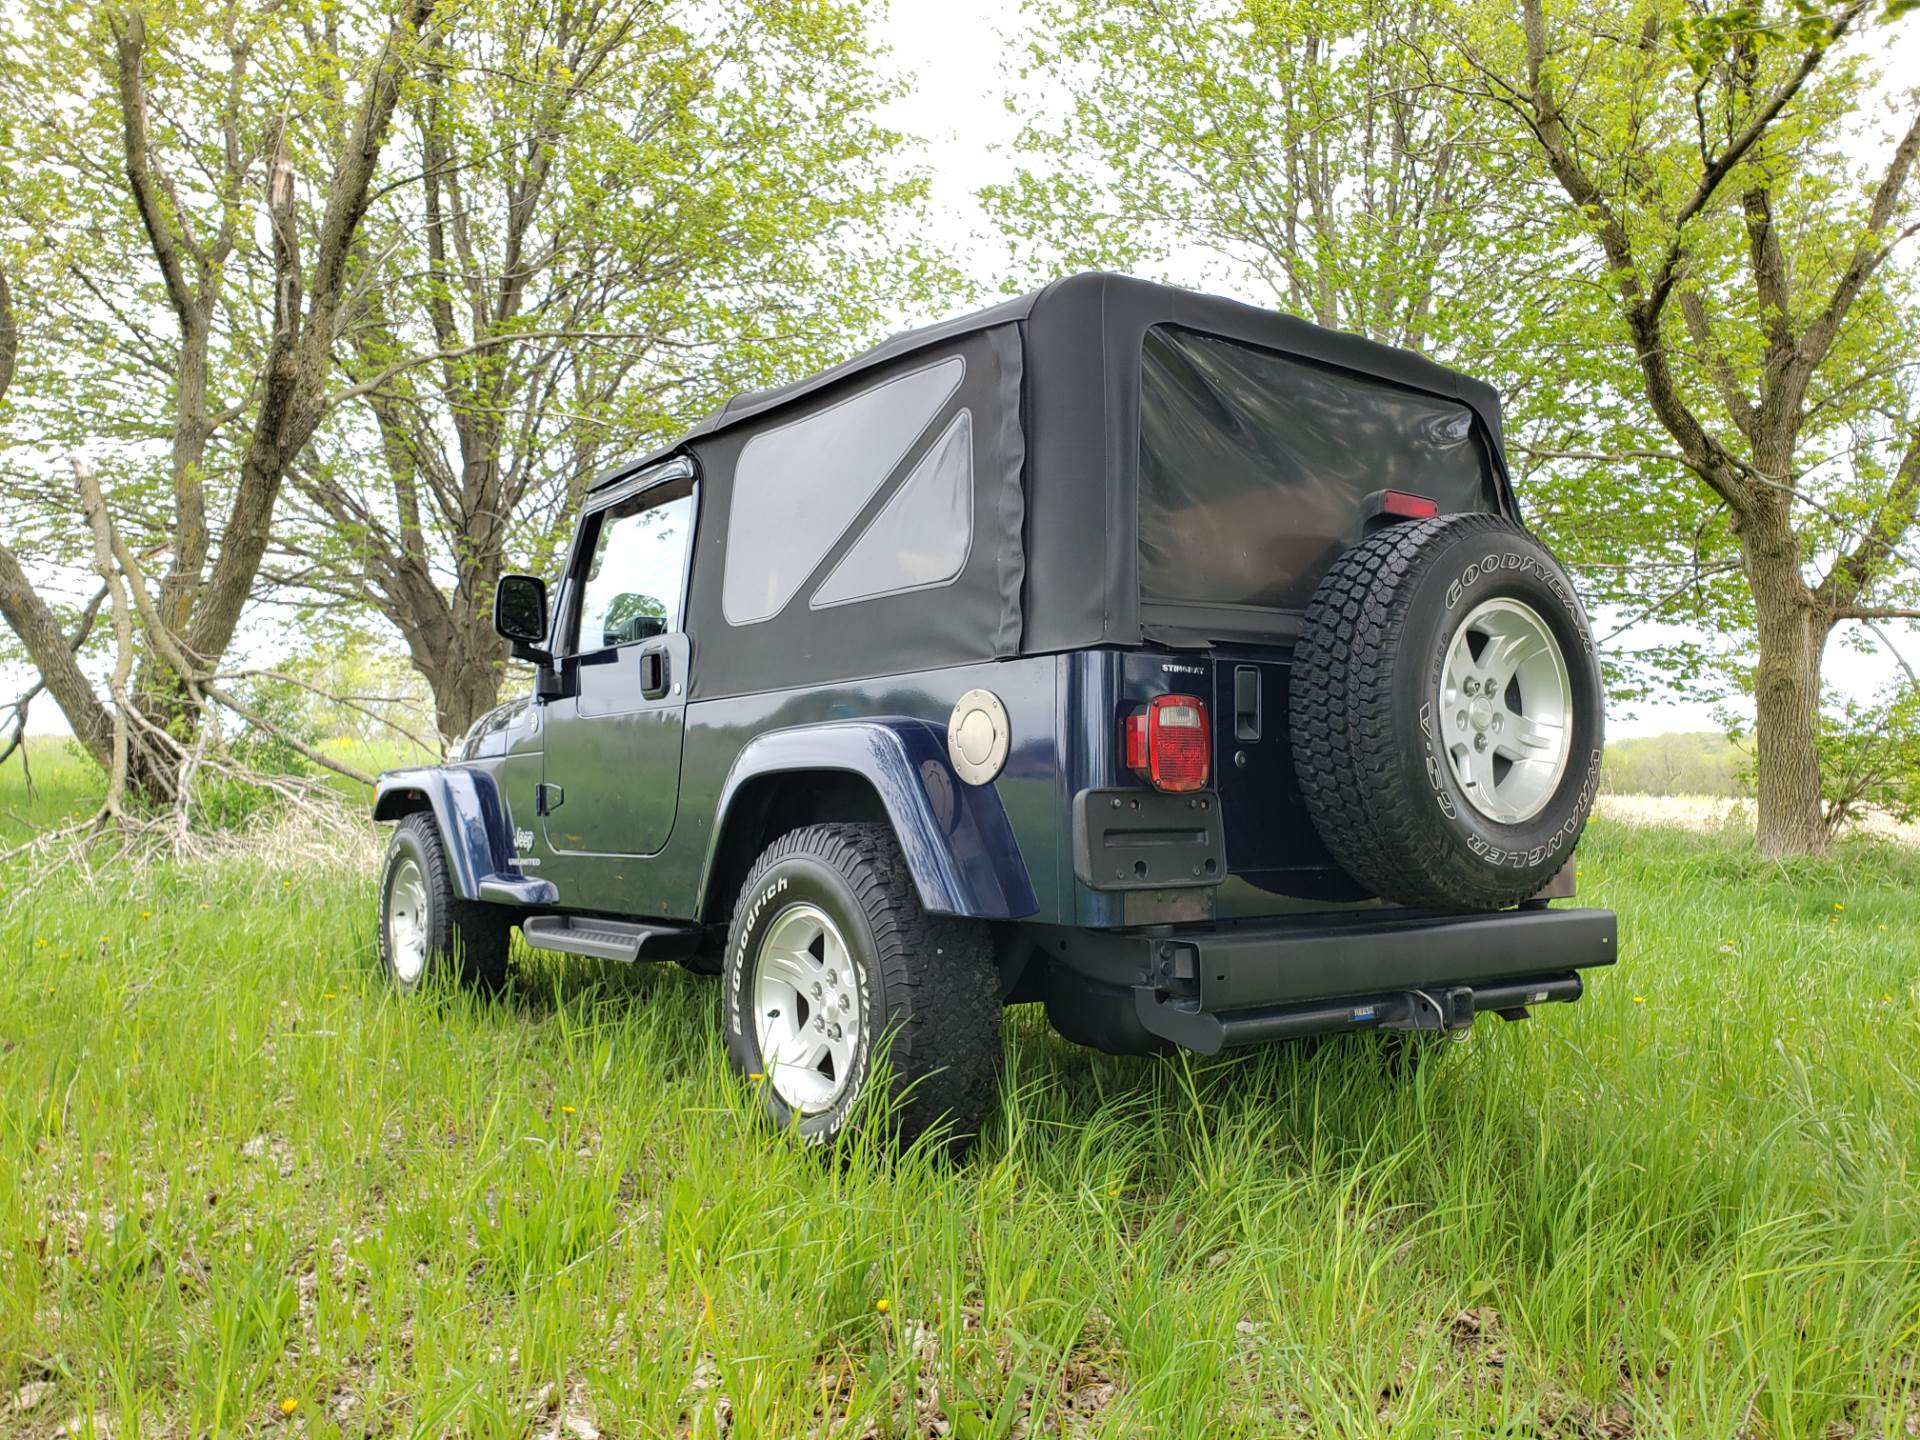 2006 Jeep Wrangler Unlimited 2dr SUV 4WD in Big Bend, Wisconsin - Photo 4